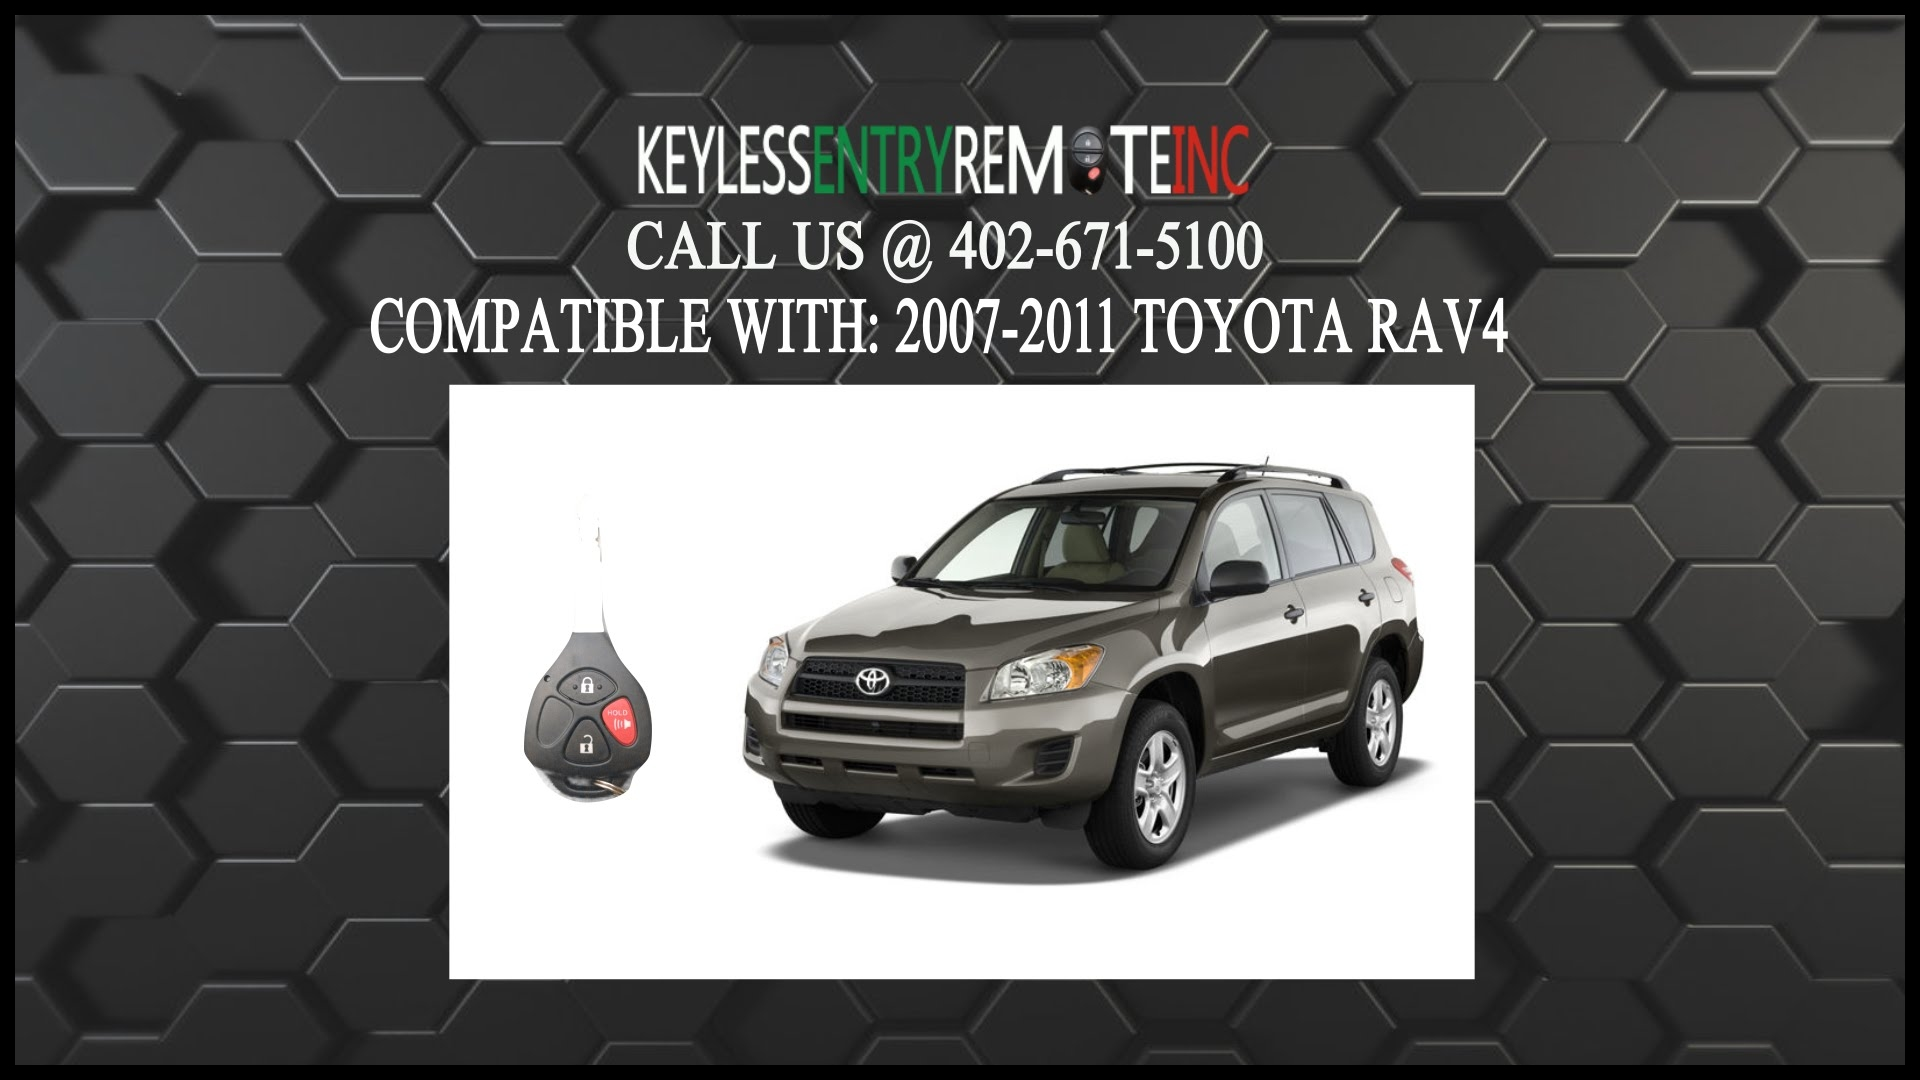 How To Replace Toyota Rav4 Key Fob Battery 2007 2008 2009 2010 2011